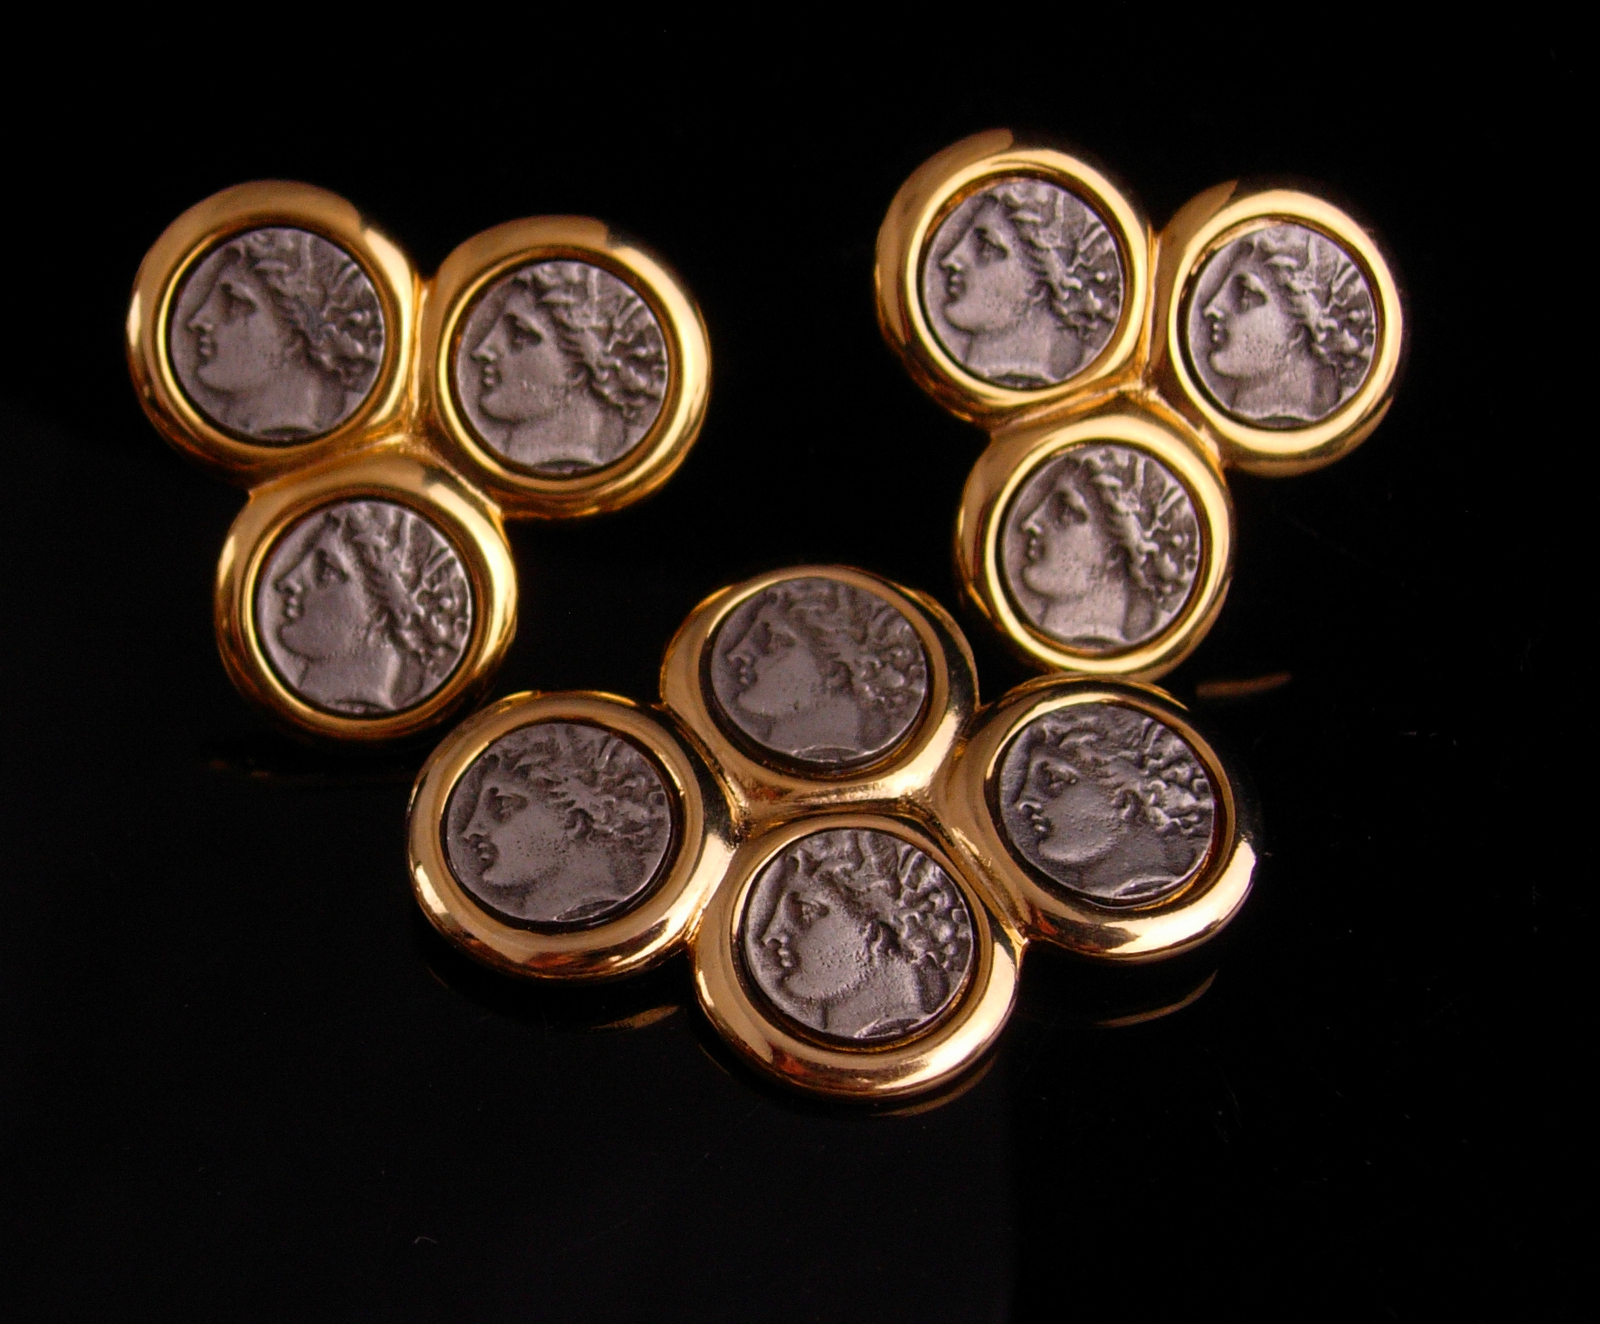 KJL Vintage Brooch & earrings - Ancient coin set - silver Roman coin earrings -